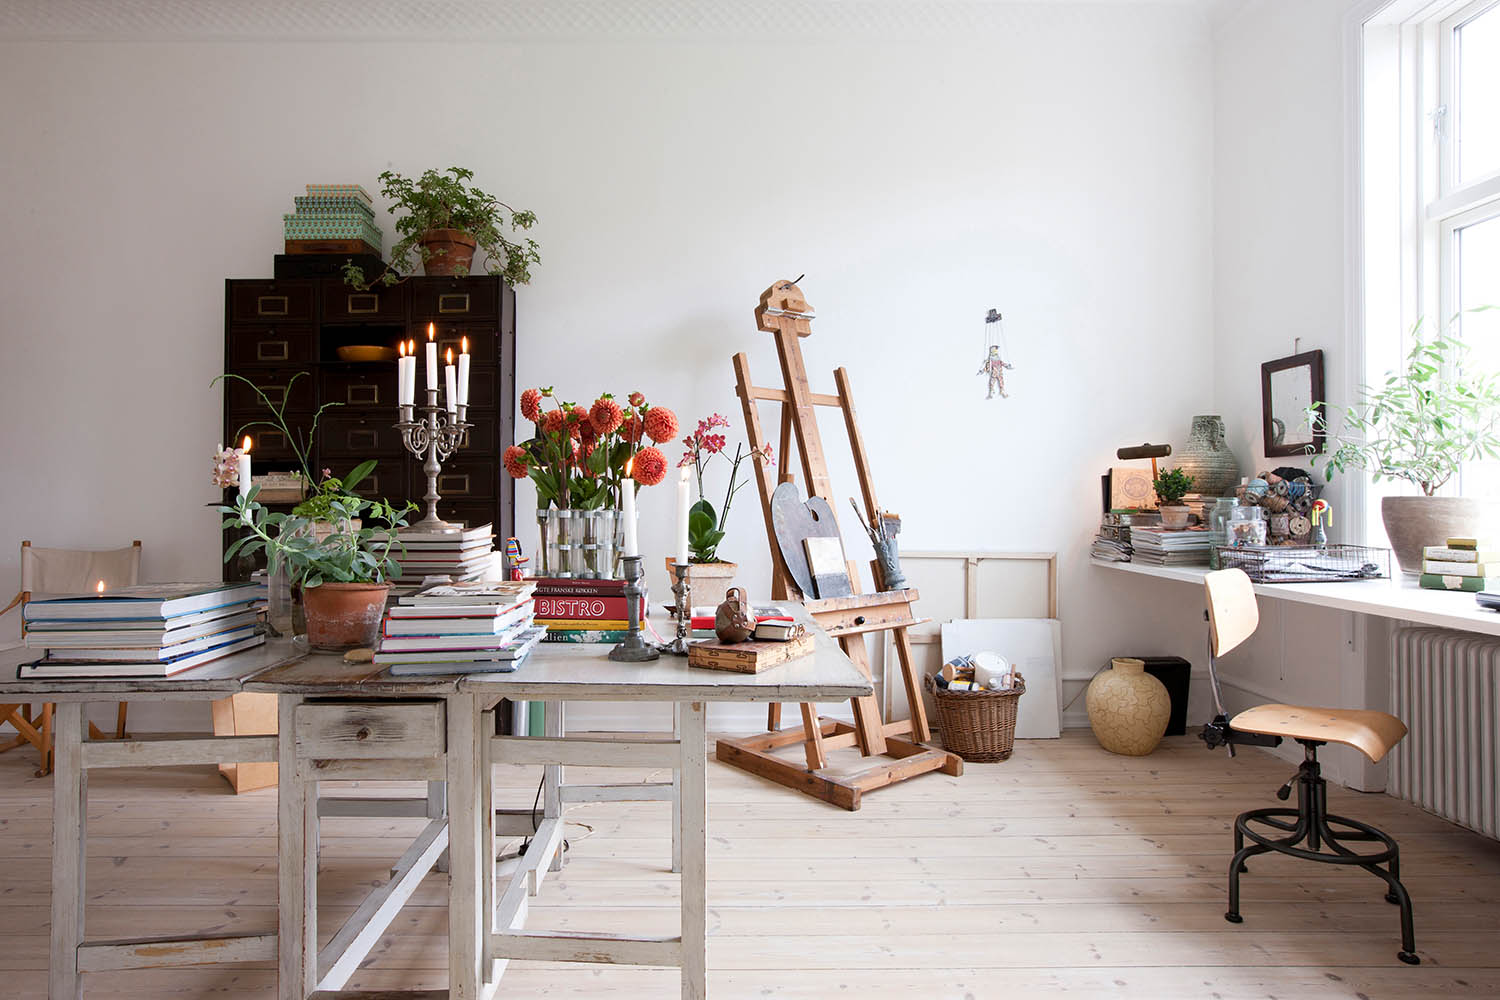 10 interior design quotes that will inspire your next reno - Better homes and gardens interior designer ...